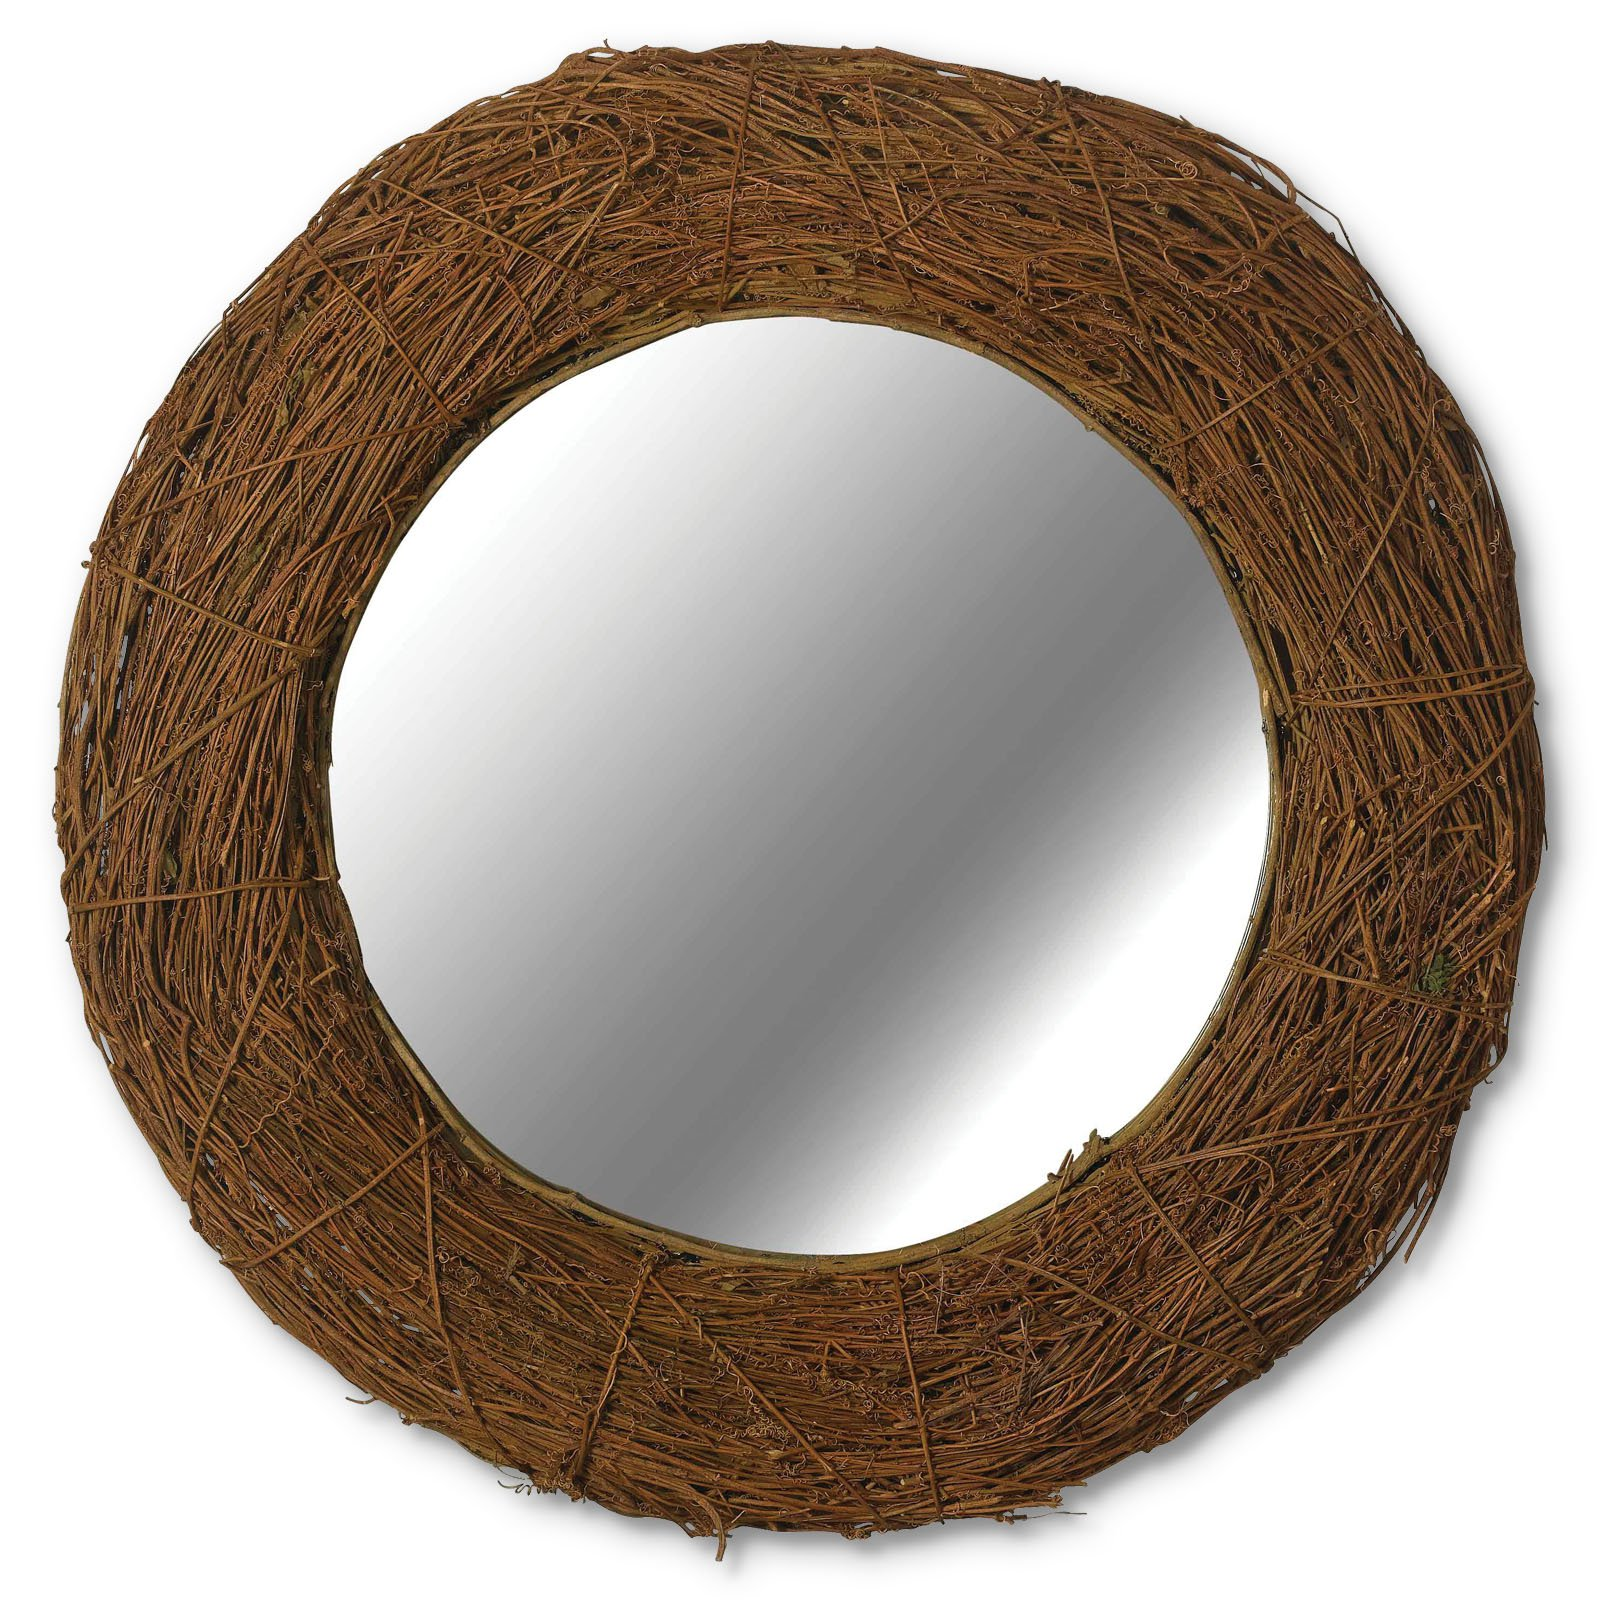 Harvest Natural Rattan Framed Wall Mirror - 32 diam.in.